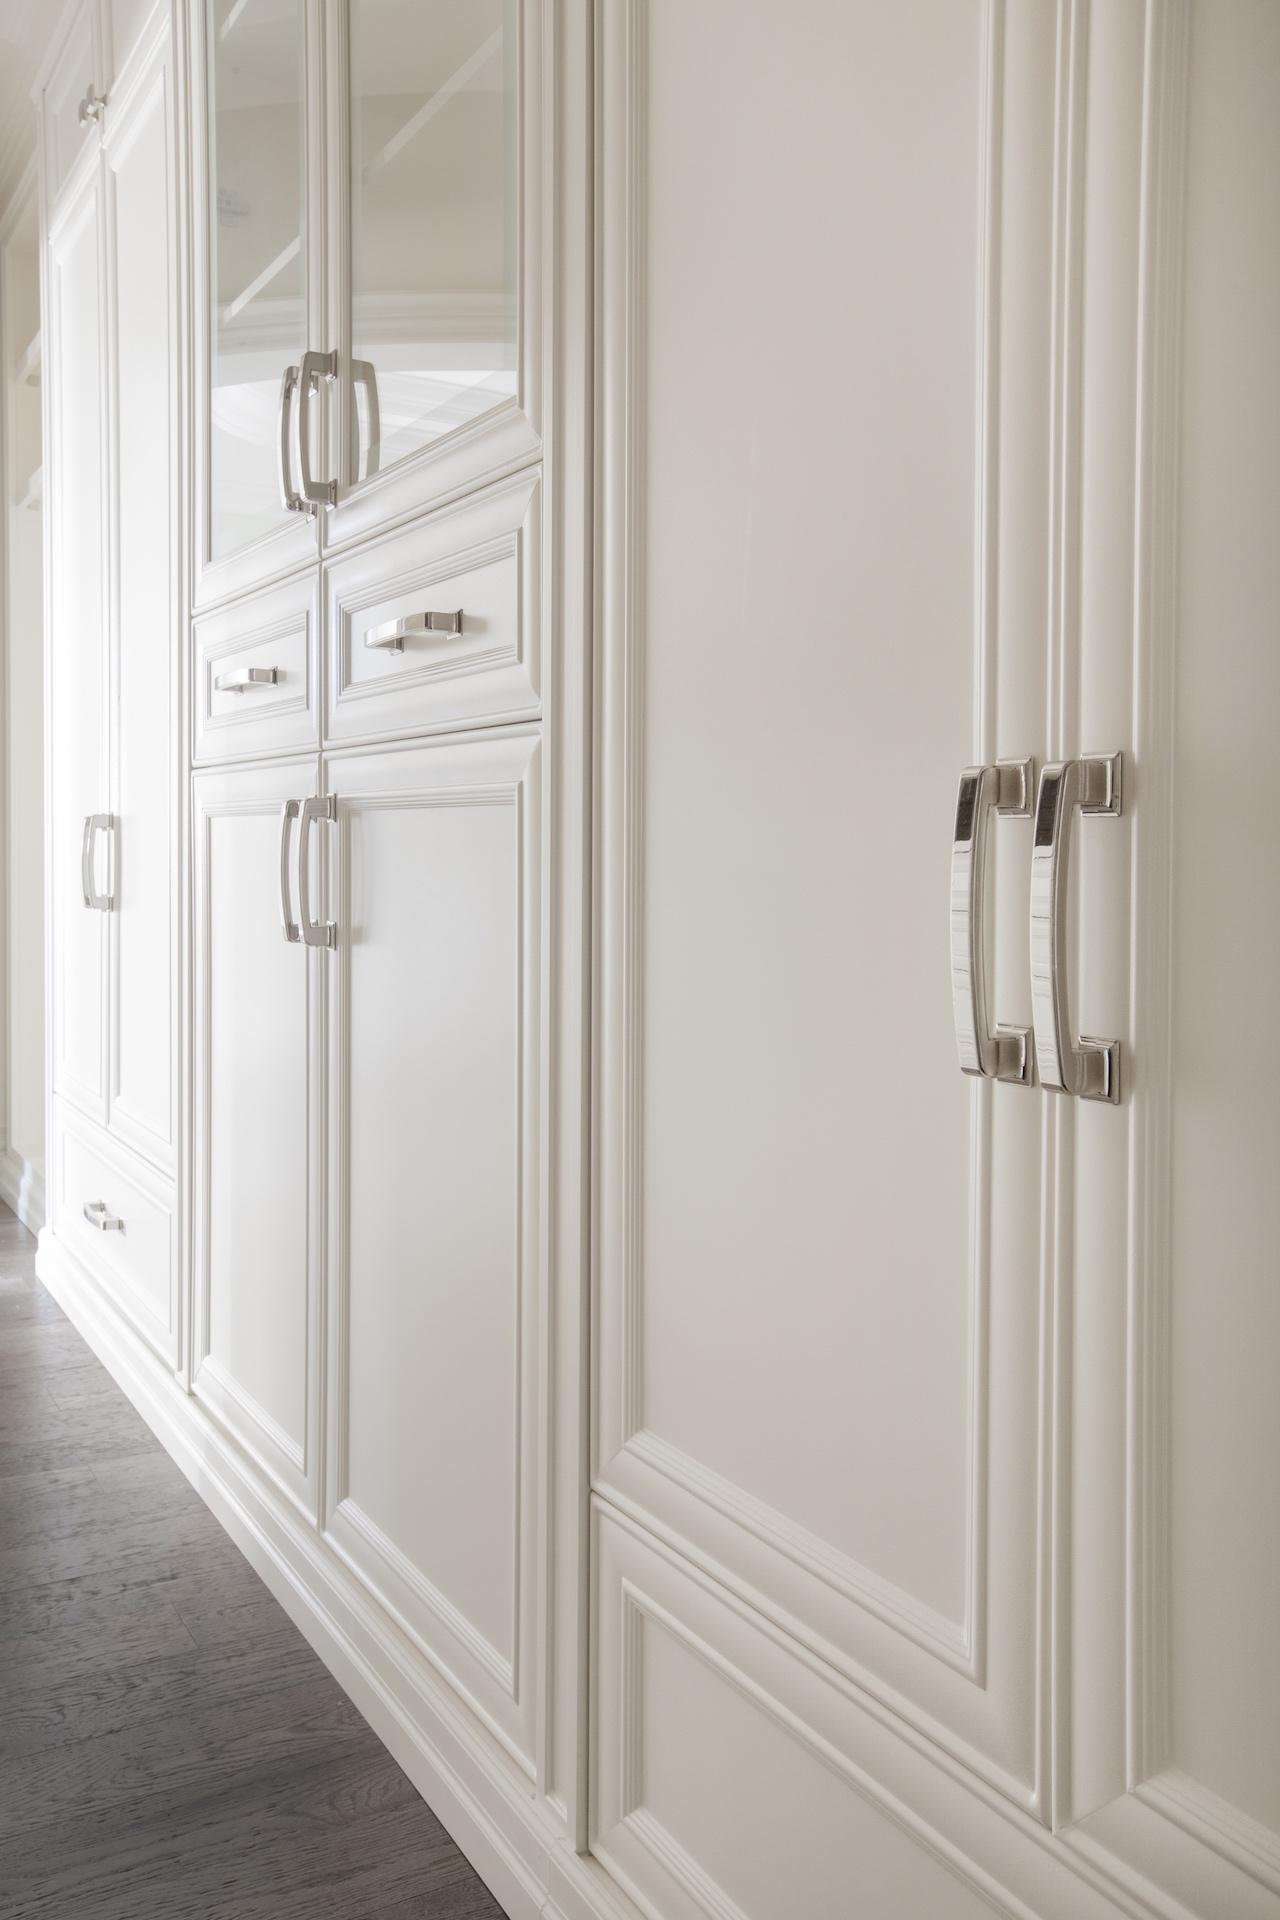 White cabinets with silver handles